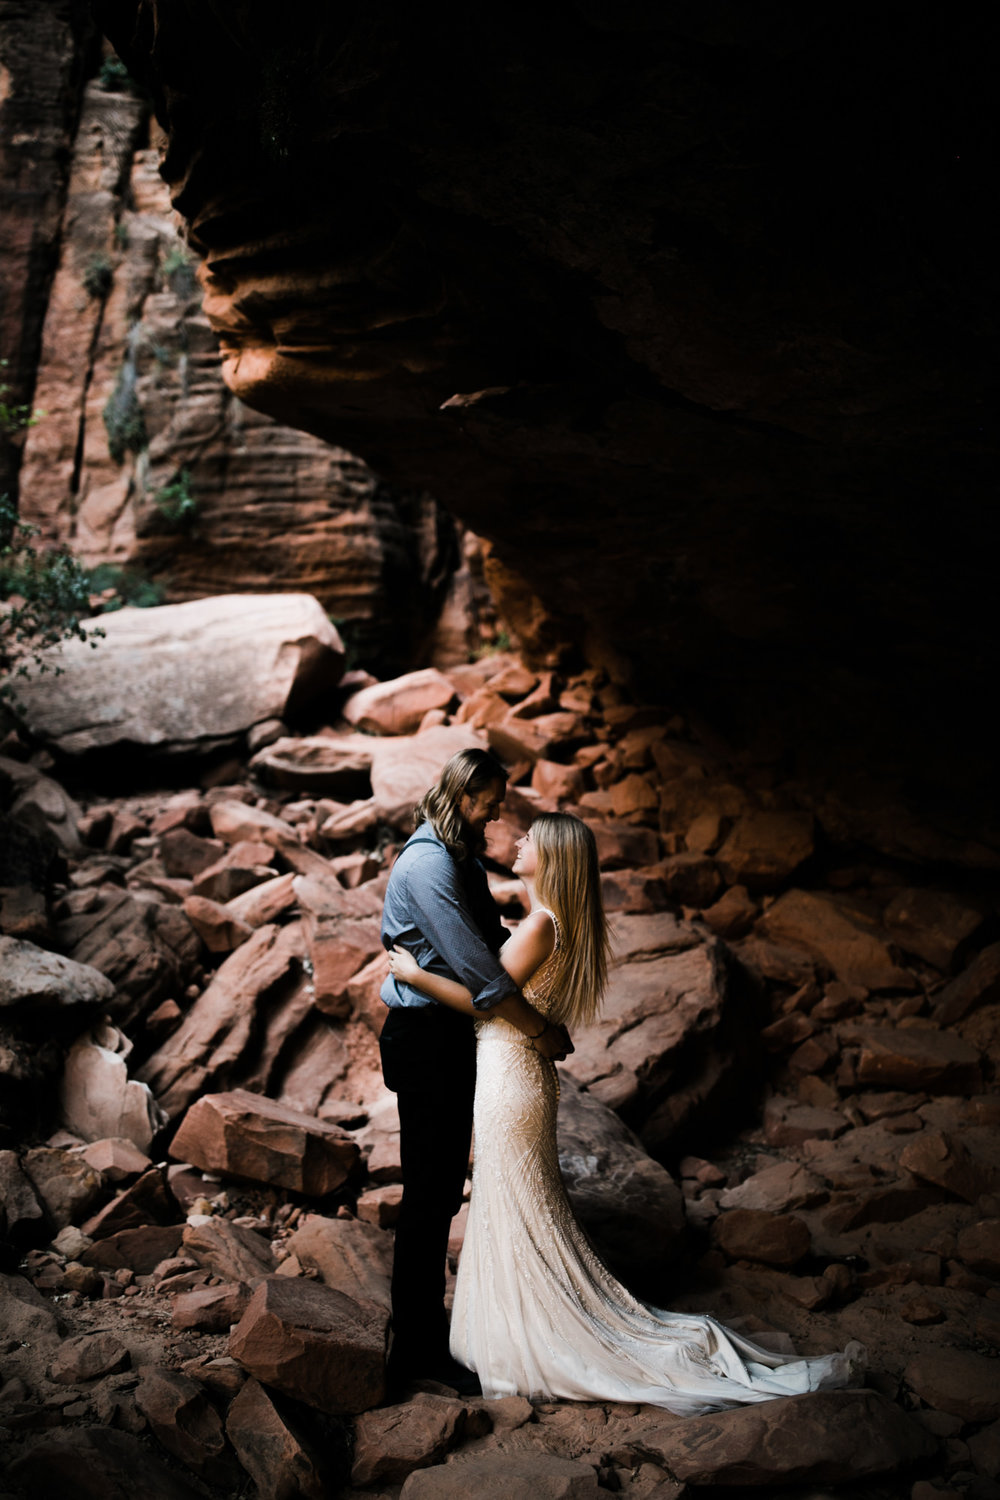 hike in elopement in zion national park | destination adventure wedding photographers | the hearnes adventure photography | www.thehearnes.com